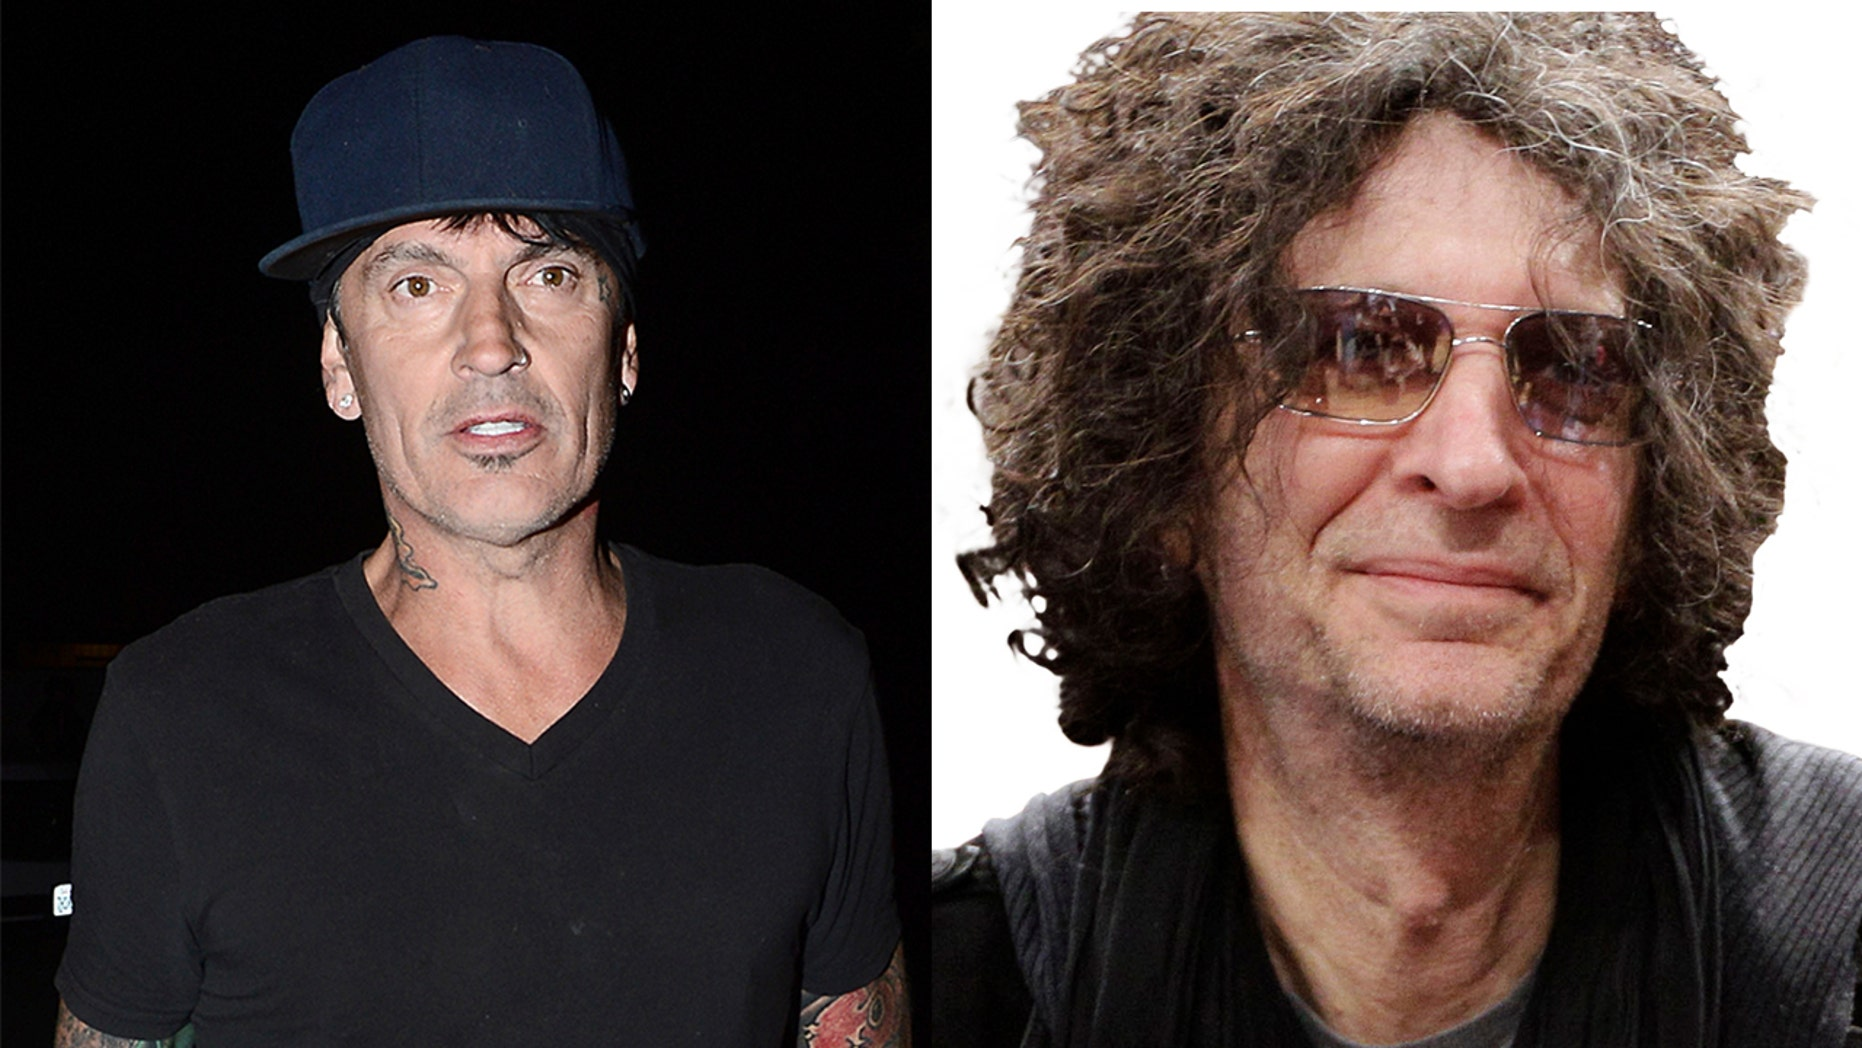 Tommy Lee calls out Howard Stern on Twitter for blaming him for ex Heather Locklear's 'recent troubles.'